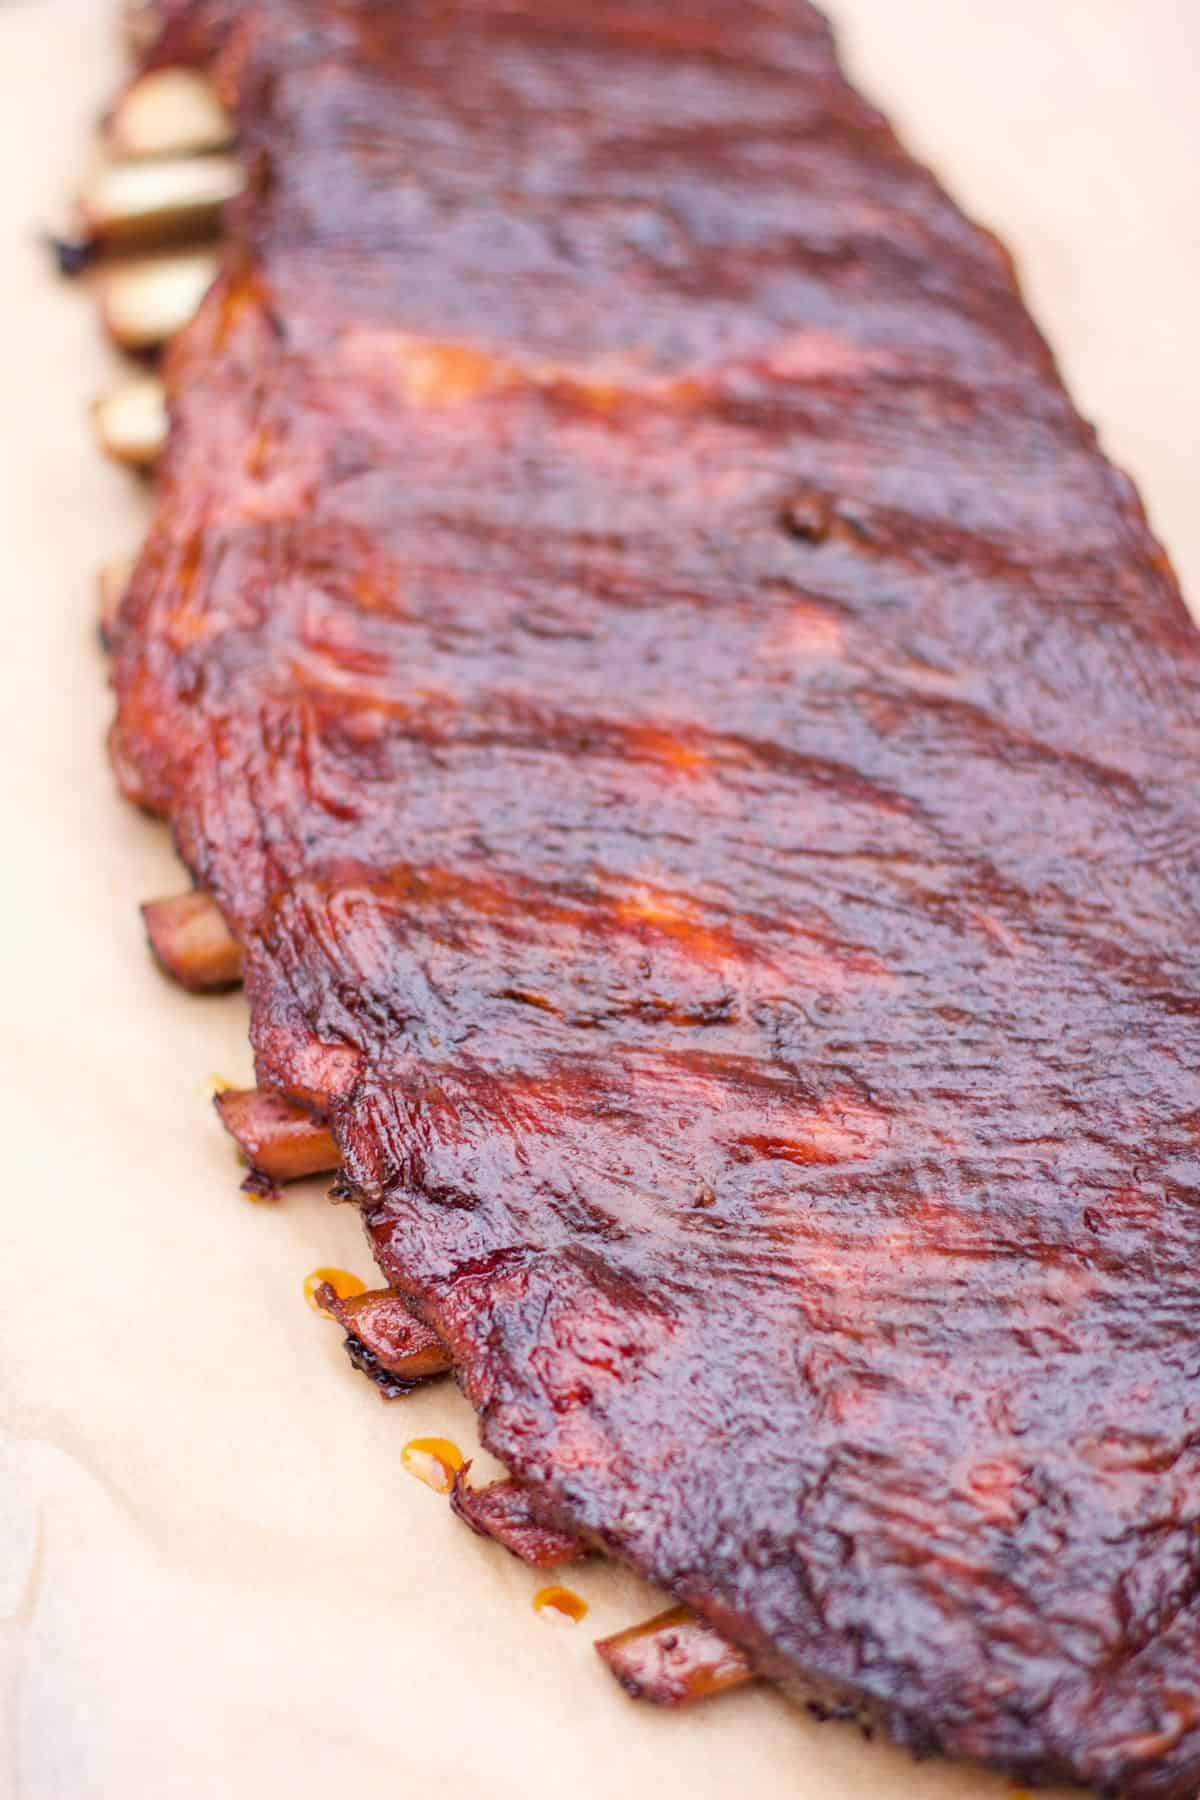 3 2 1 Smoked Spare Ribs with BBQ Sauce